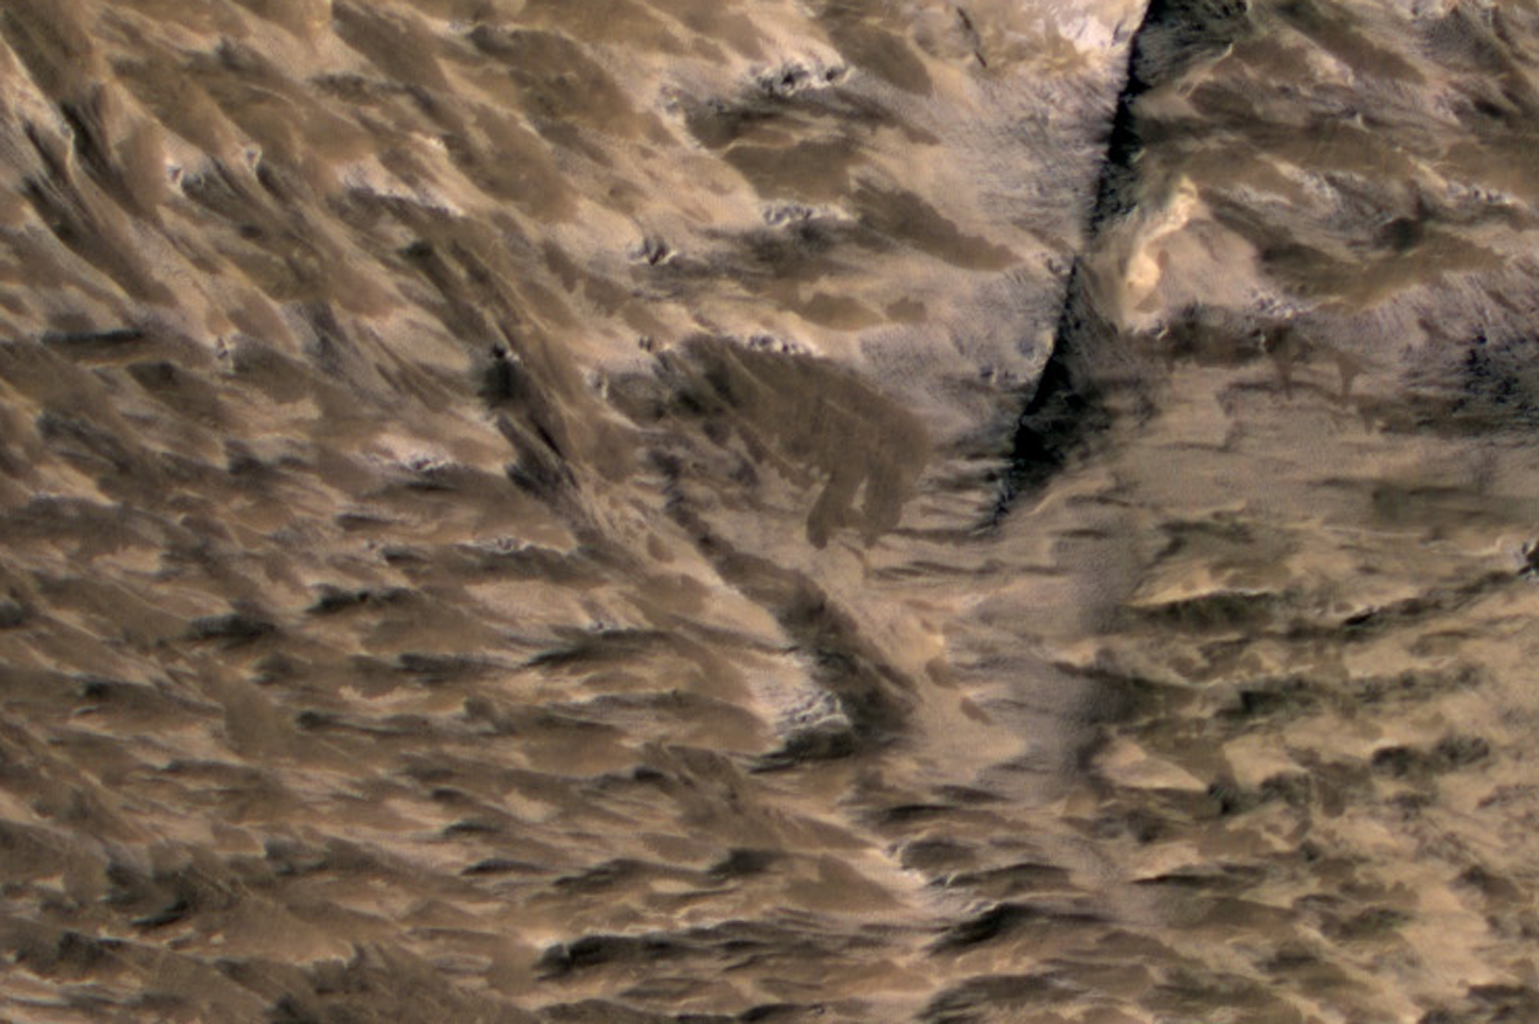 This April 6, 2014, image from NASA's Mars Reconnaissance Orbiter shows numerous landslides in the vicinity of where an impact crater was excavated in March 2012.